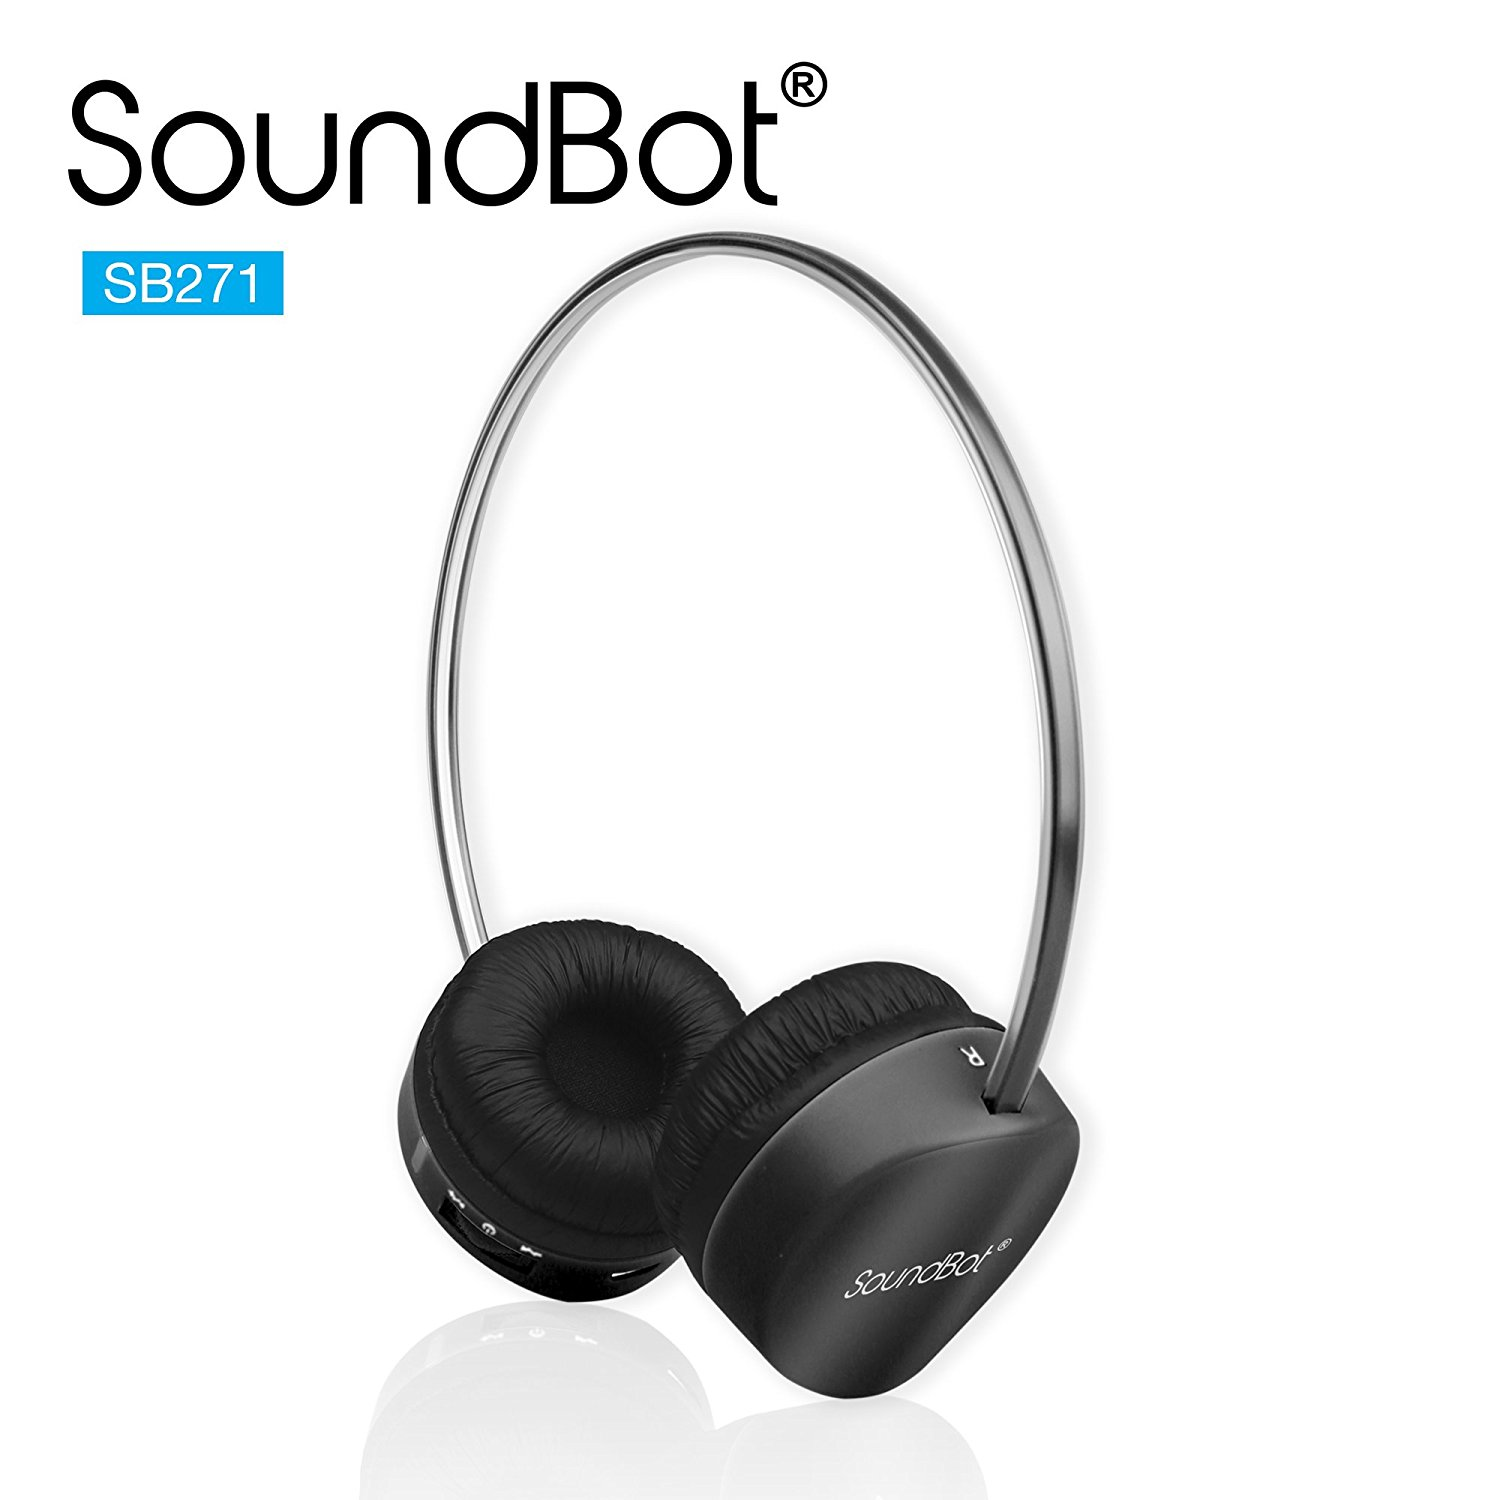 (Loot)SoundBot SB271 Stereo Bluetooth 4.1 Wireless Headphone At Rs 1299 - Amazon